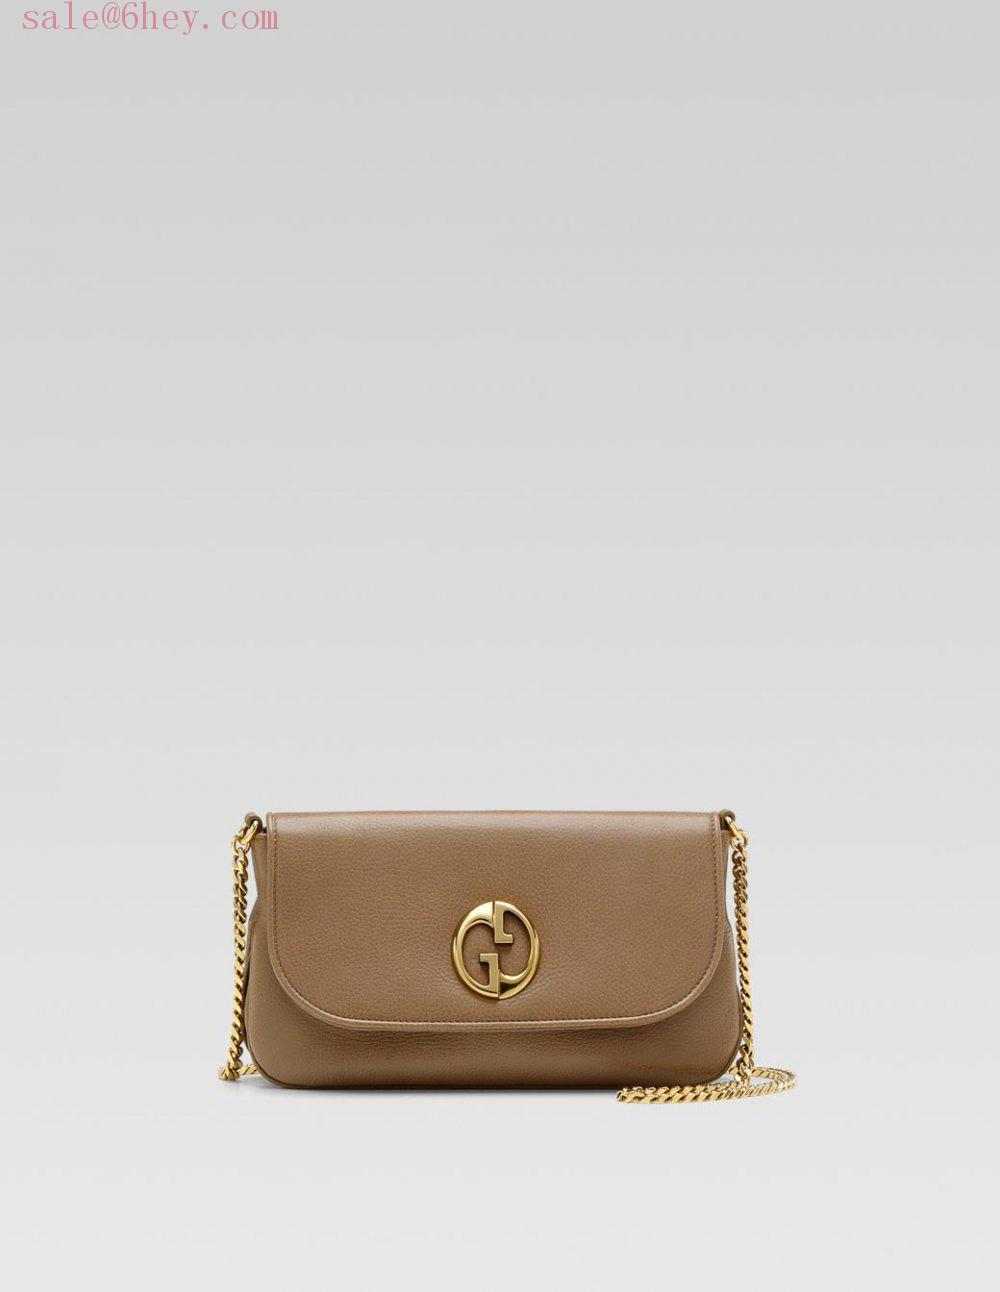 gucci shoulder bag australia